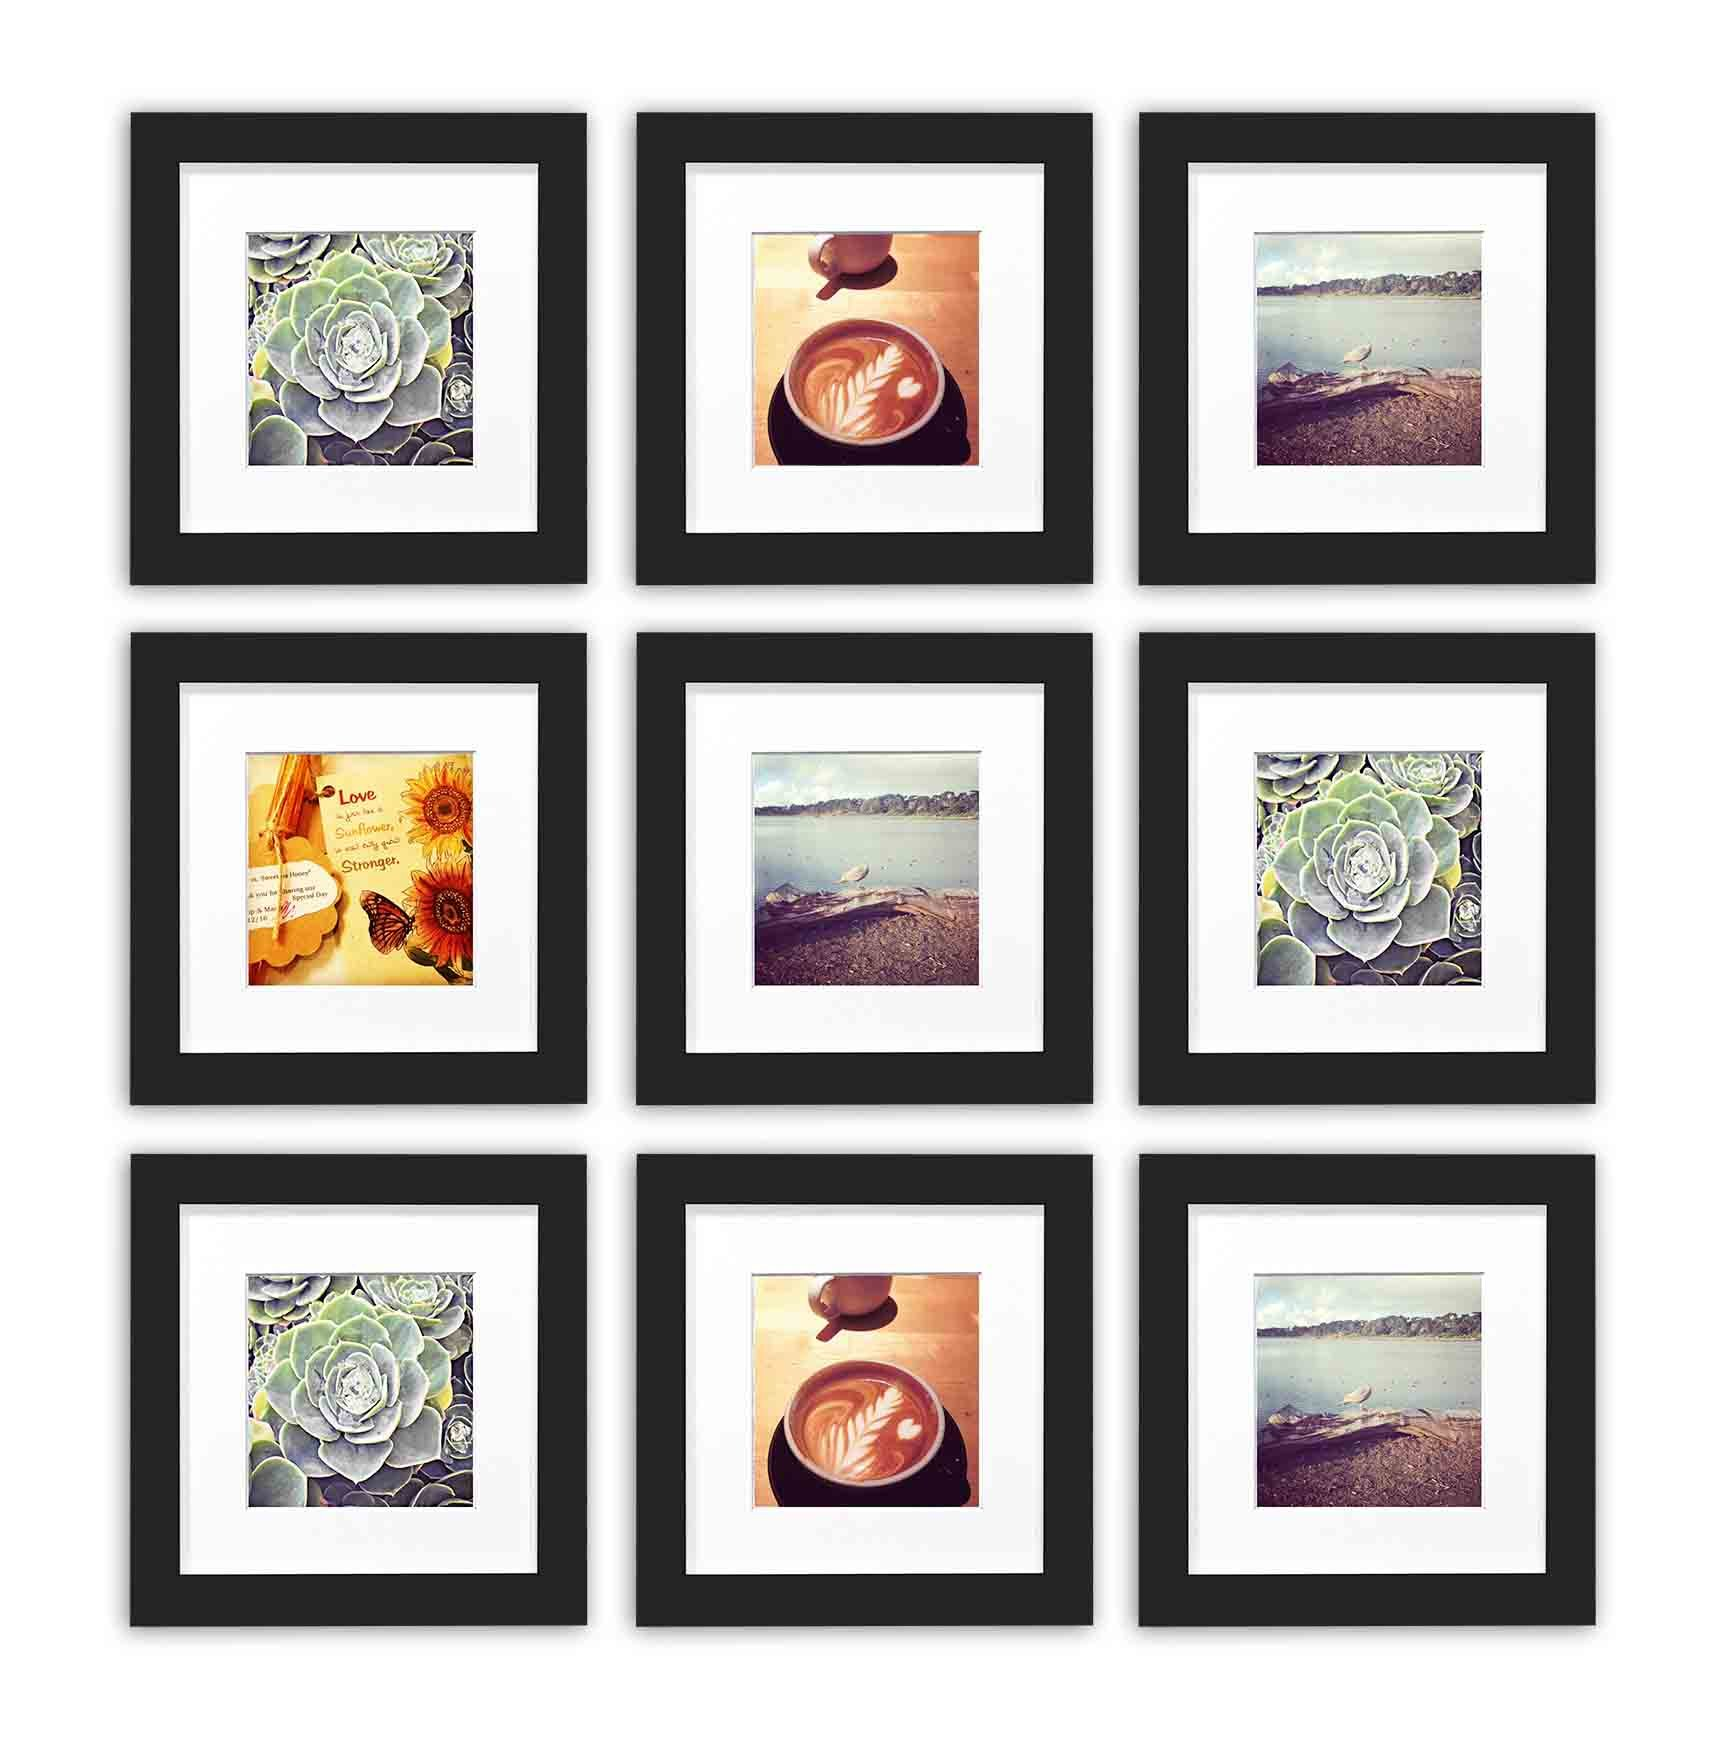 Golden State Art, Smartphone Instagram Frames Collection,Set of 9, 6x6-inch Square Photo Wood Frames with White Photo Mat & Real Glass for 4x4 Photo, Black by Golden State Art